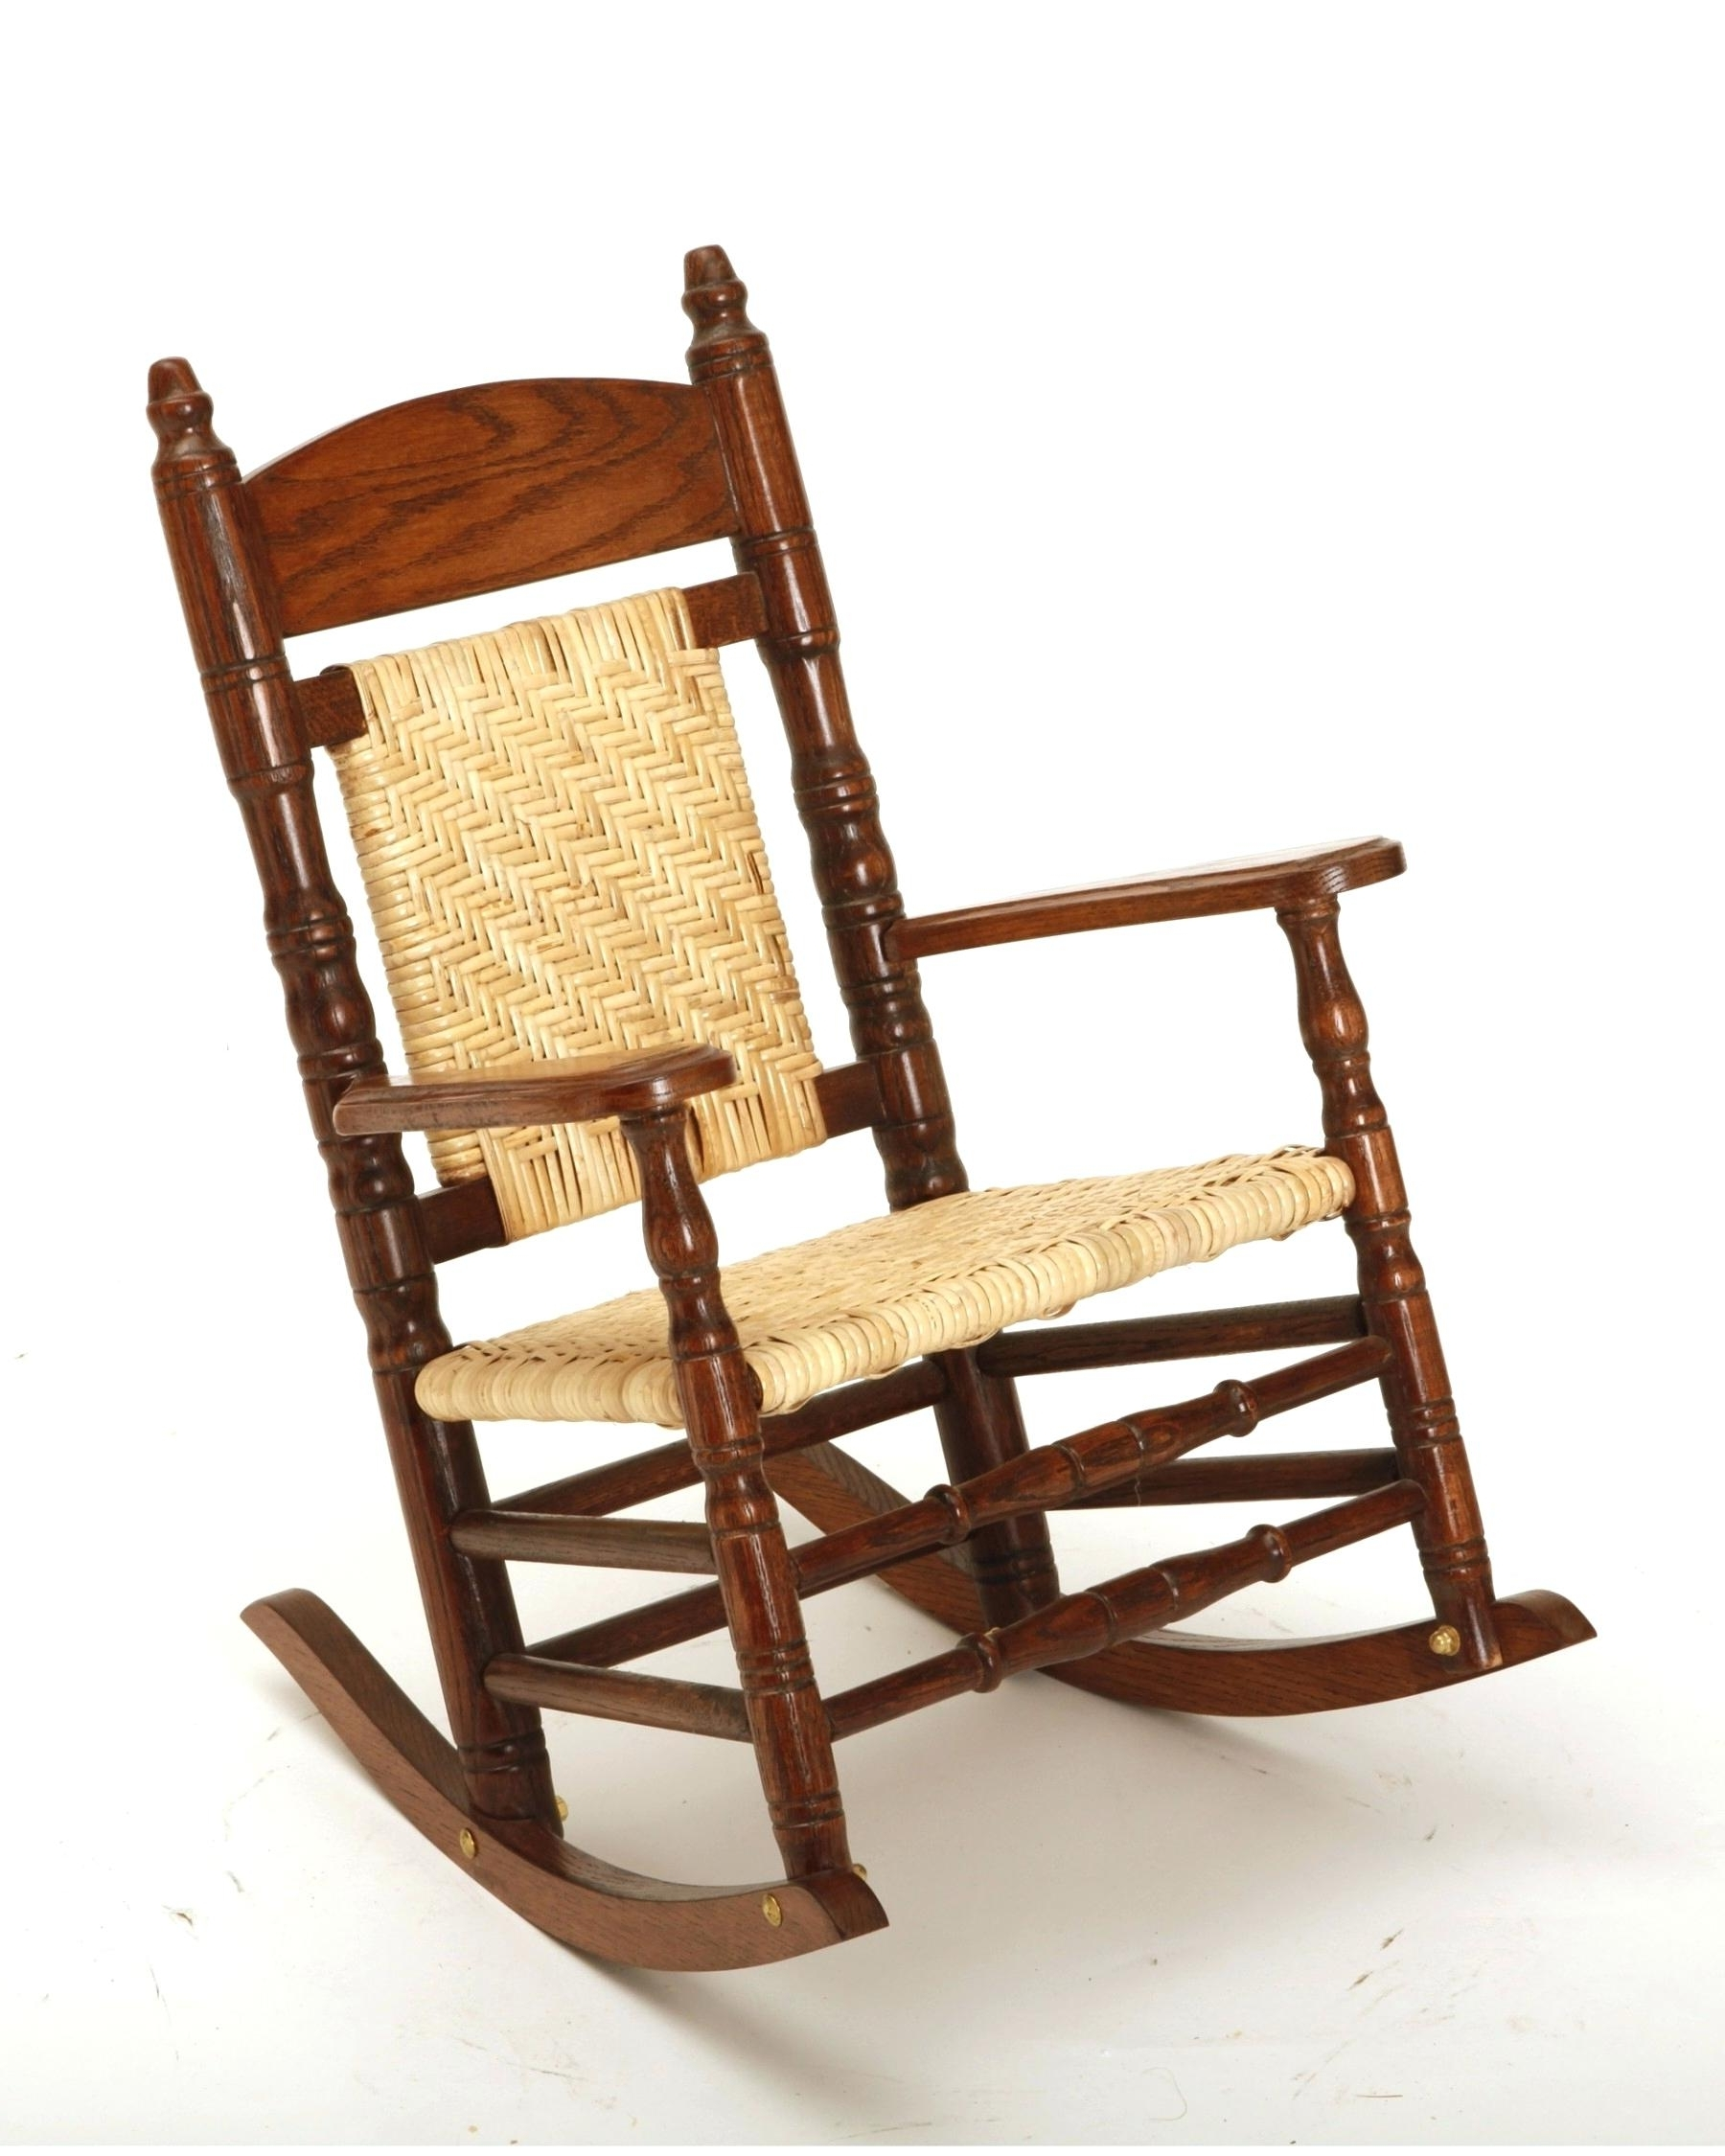 Heavy Duty Rocking Chair Interior Design Jobs Chicago App Doors Home Intended For Latest Manhattan Patio Grey Rocking Chairs (Gallery 9 of 20)